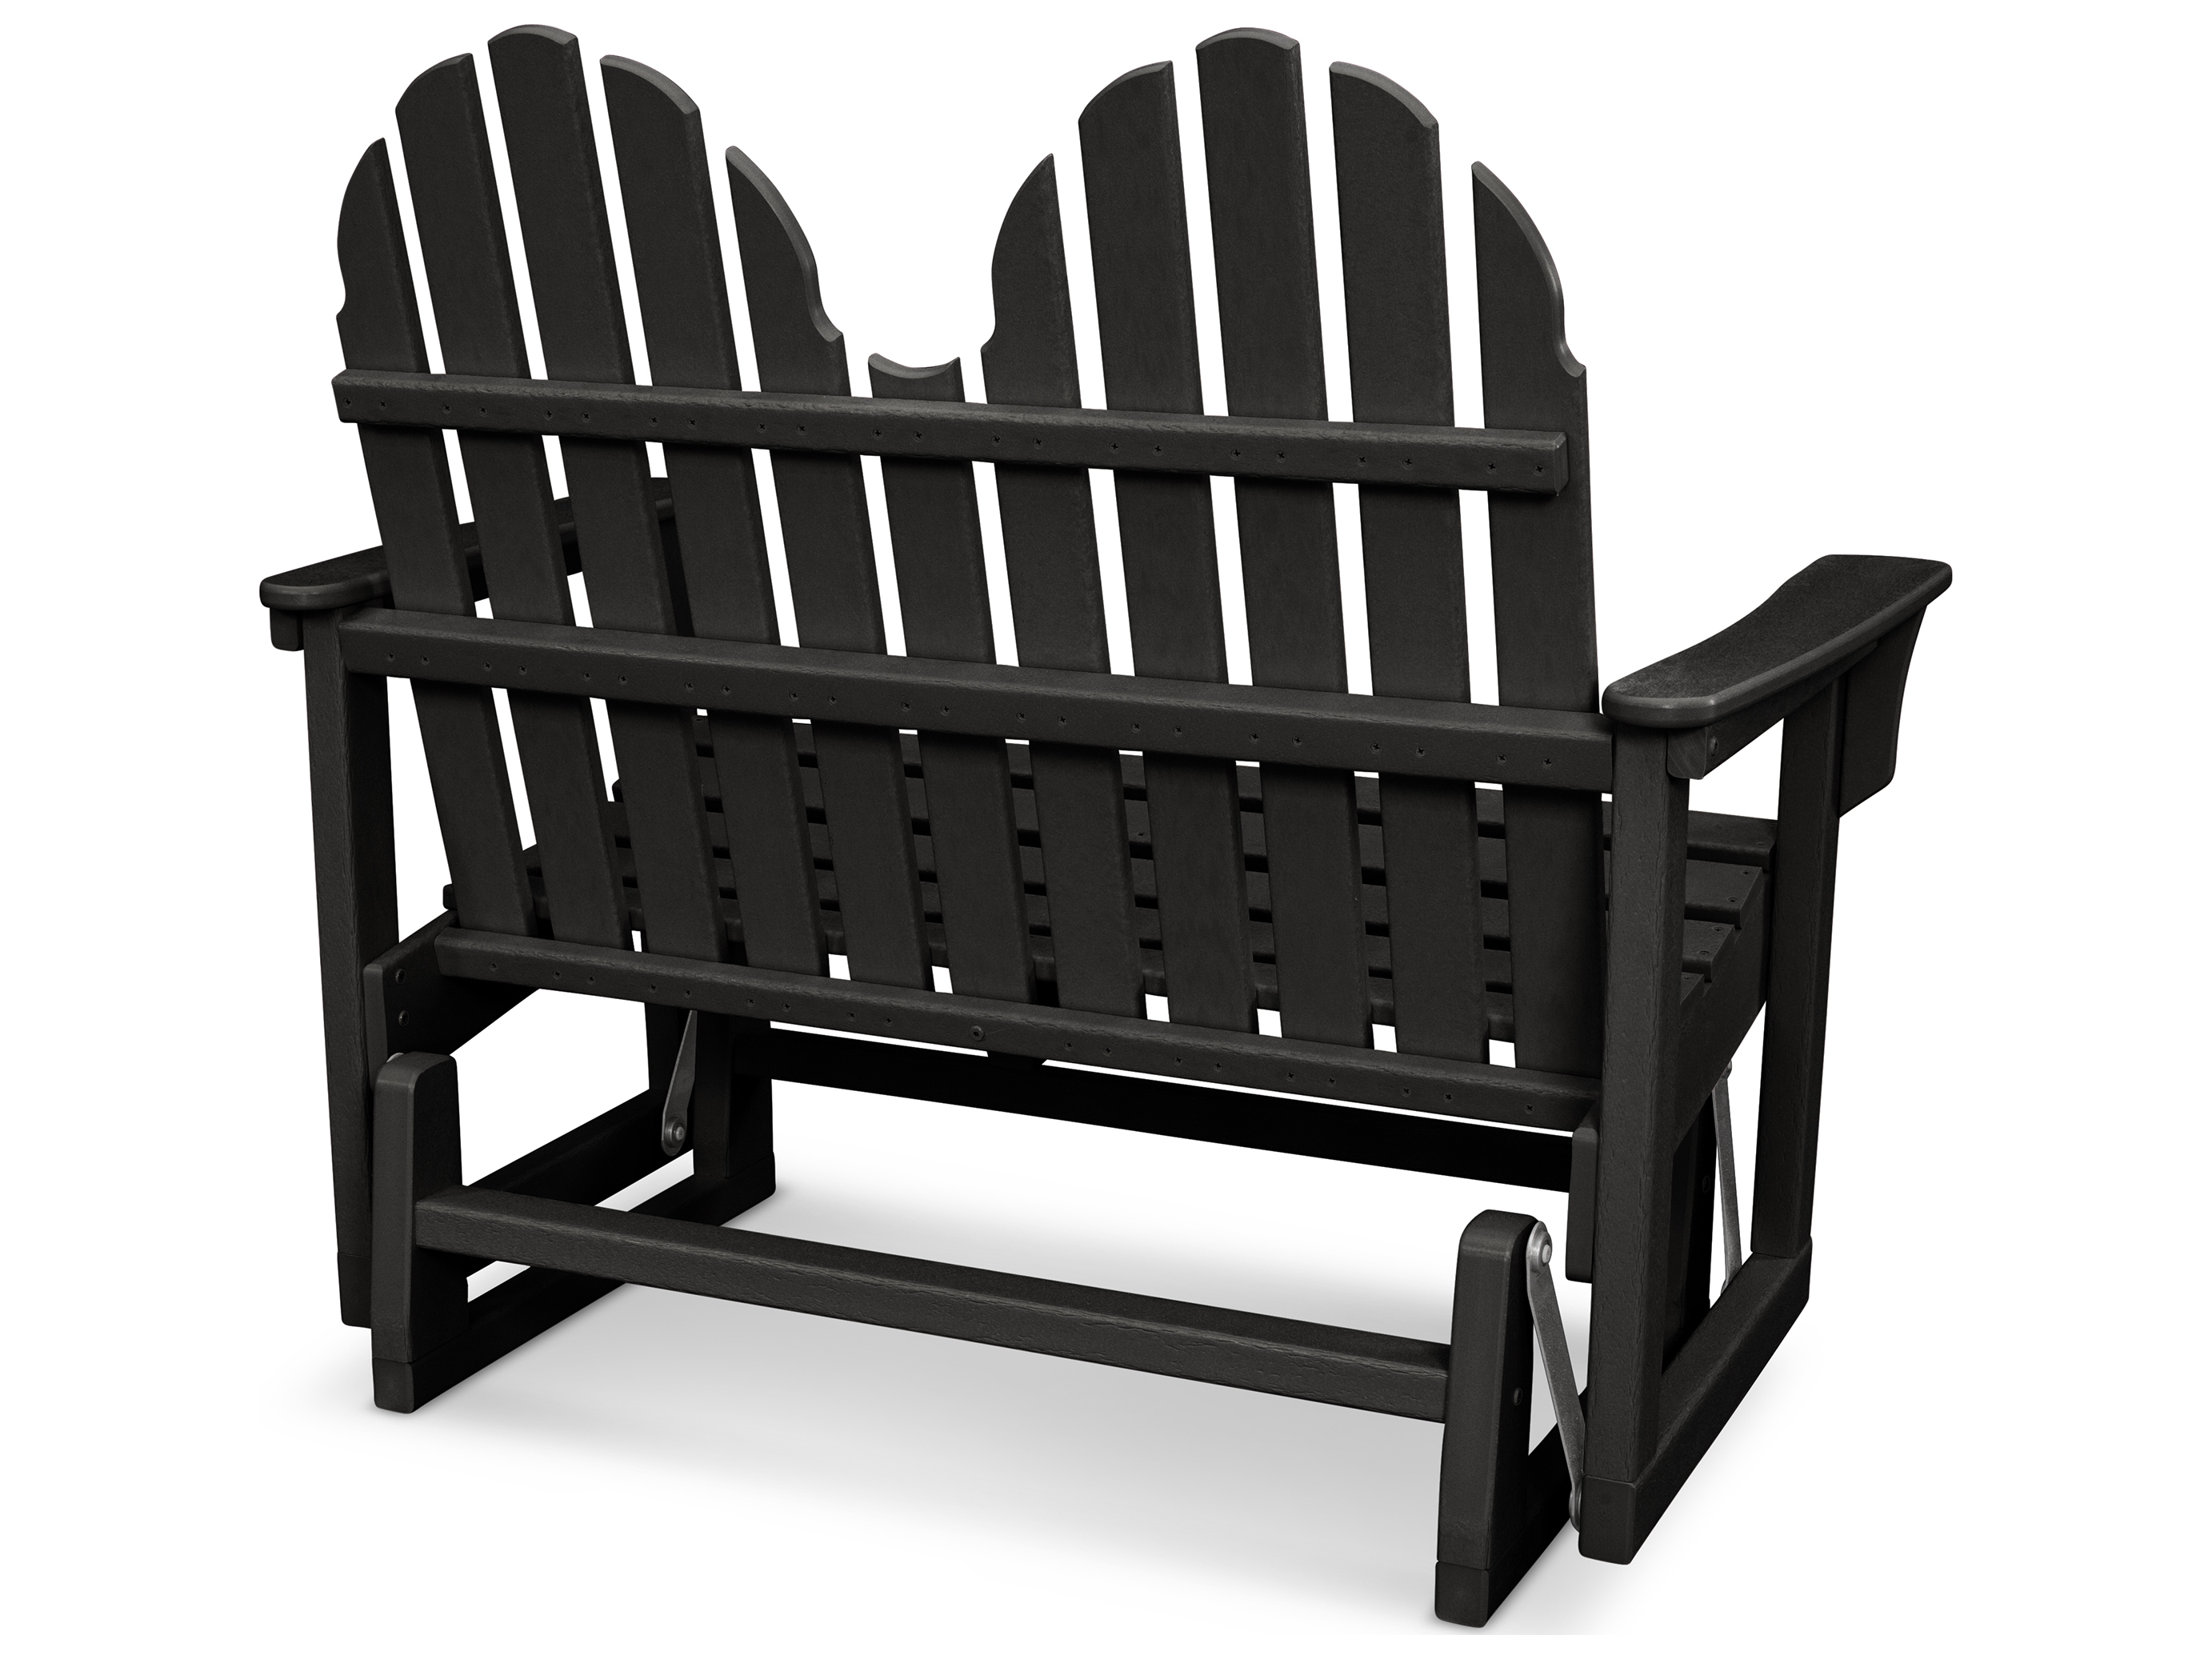 Fabulous Trex Outdoor Furniture Cape Cod Adirondack 48 Glider In Charcoal Black Creativecarmelina Interior Chair Design Creativecarmelinacom